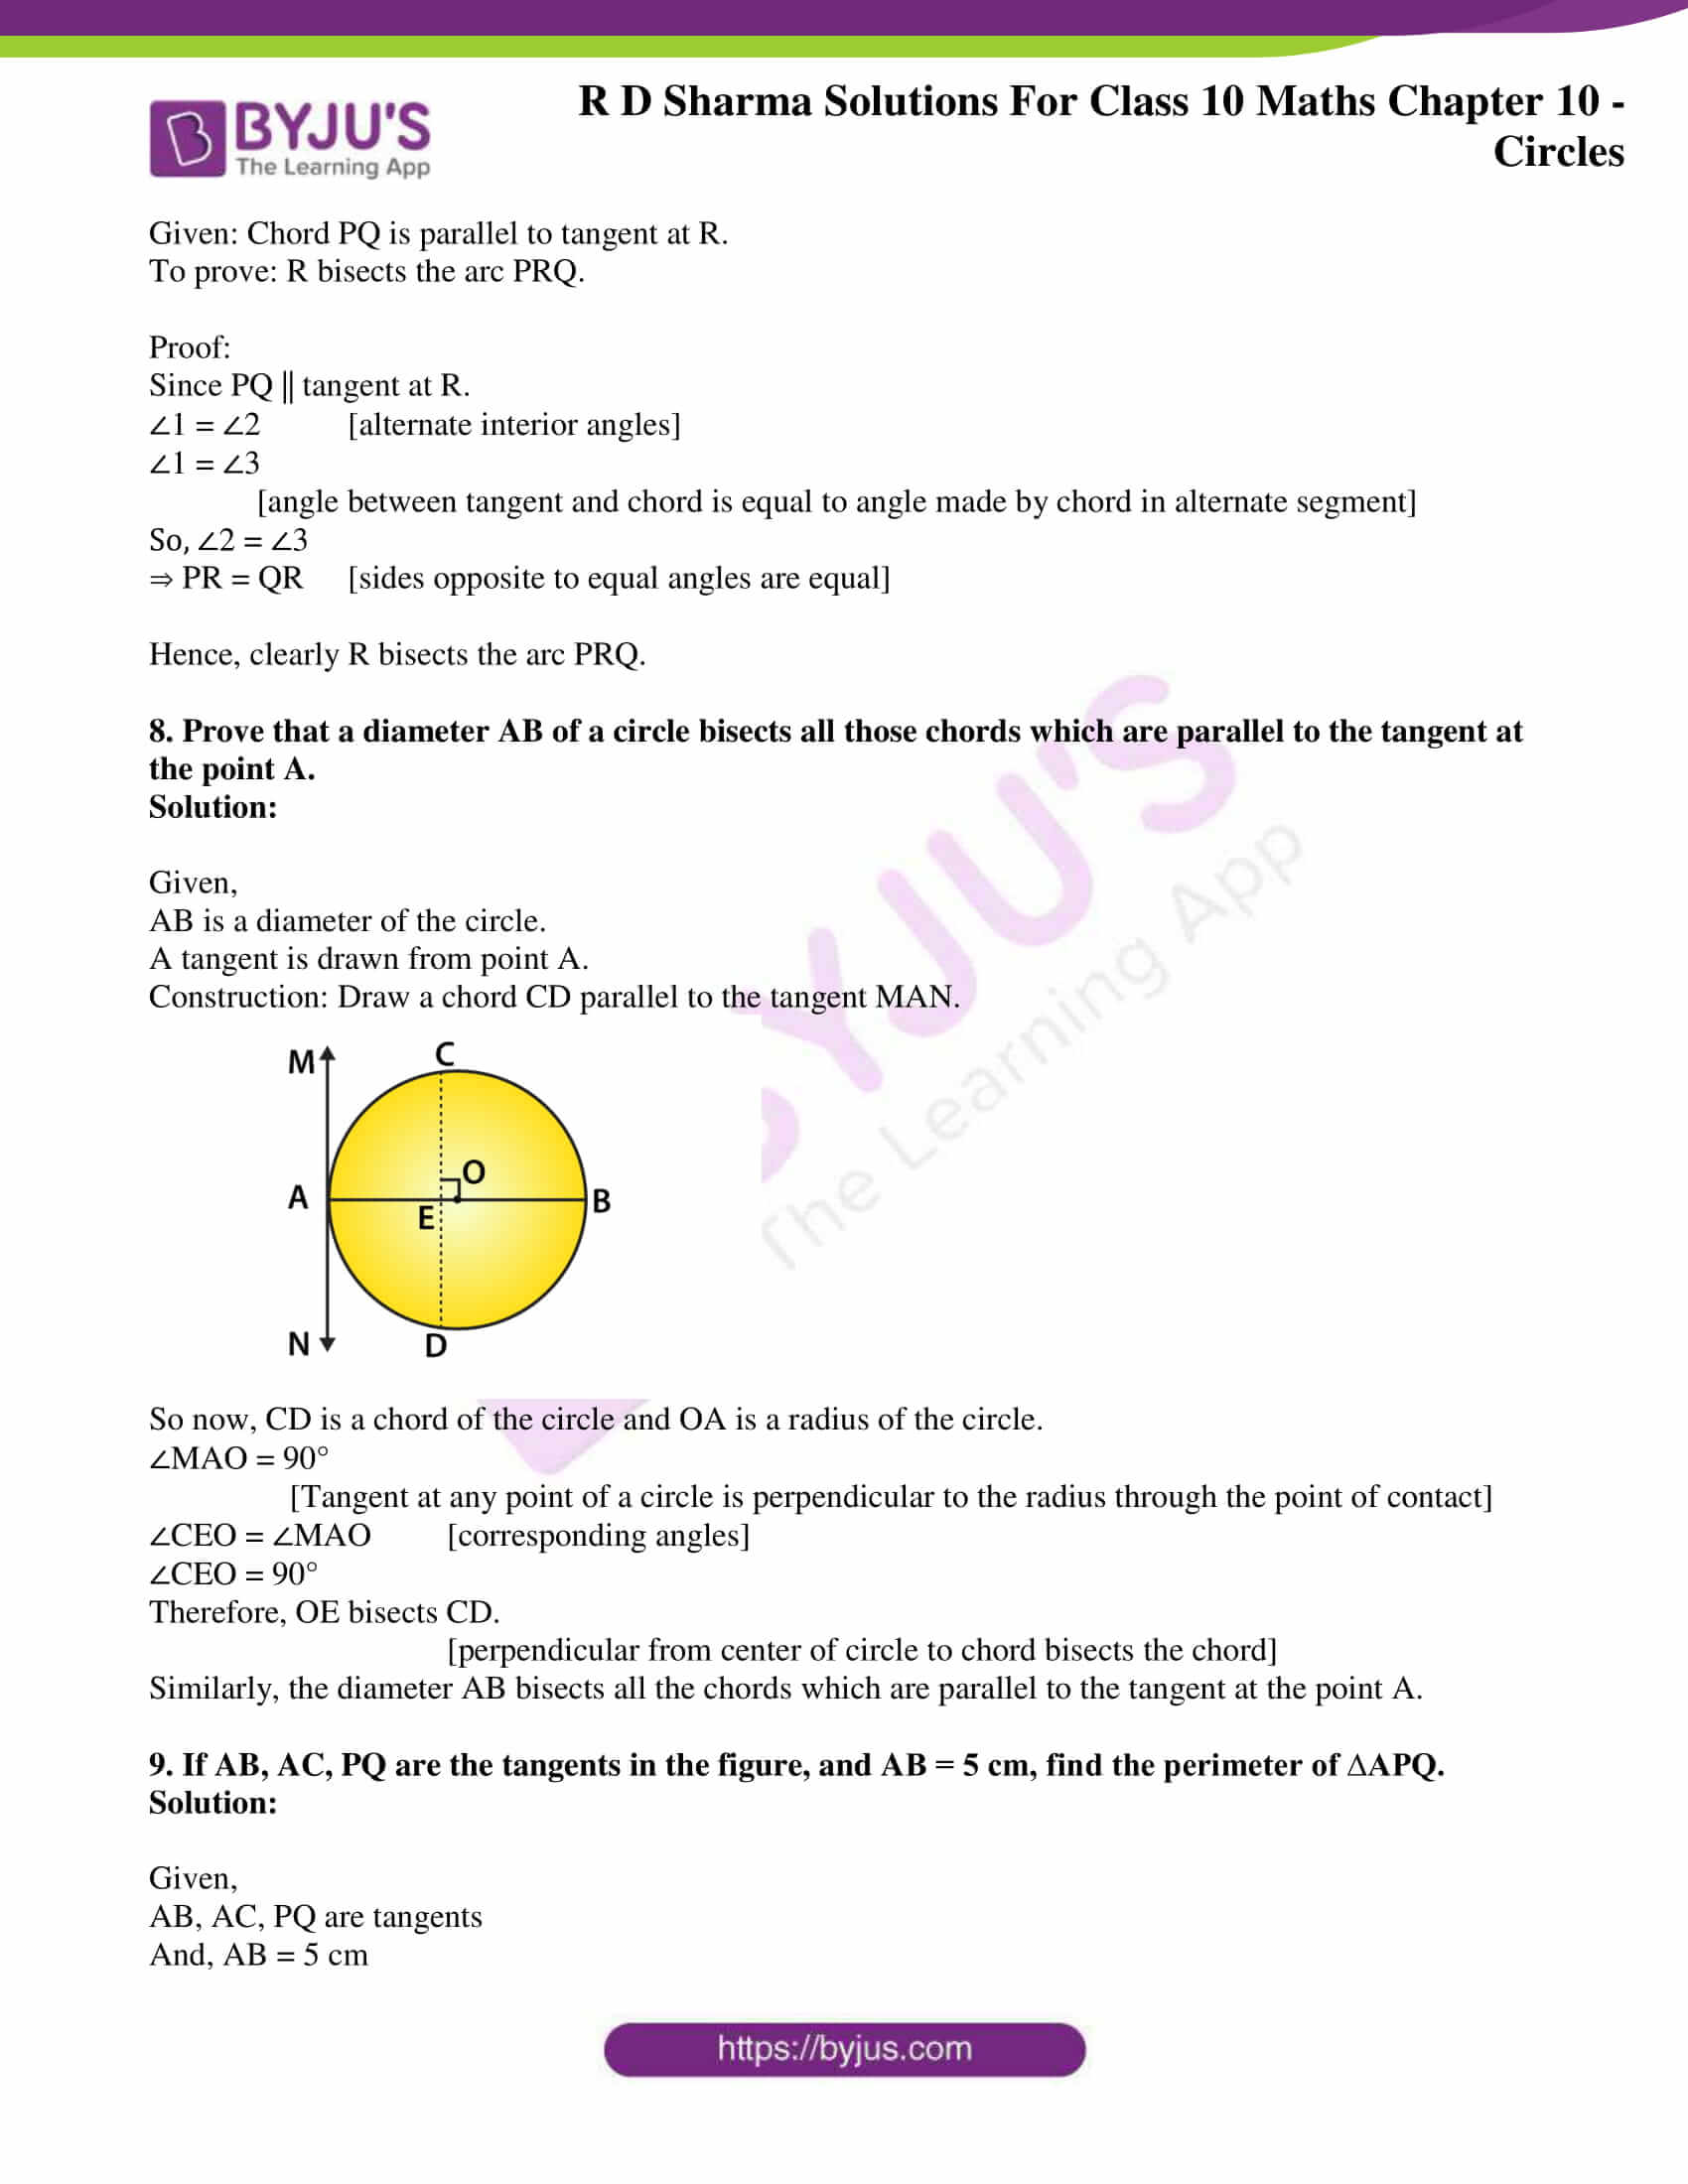 rd sharma class 10 chapter 10 circles solutions exercise 2 05